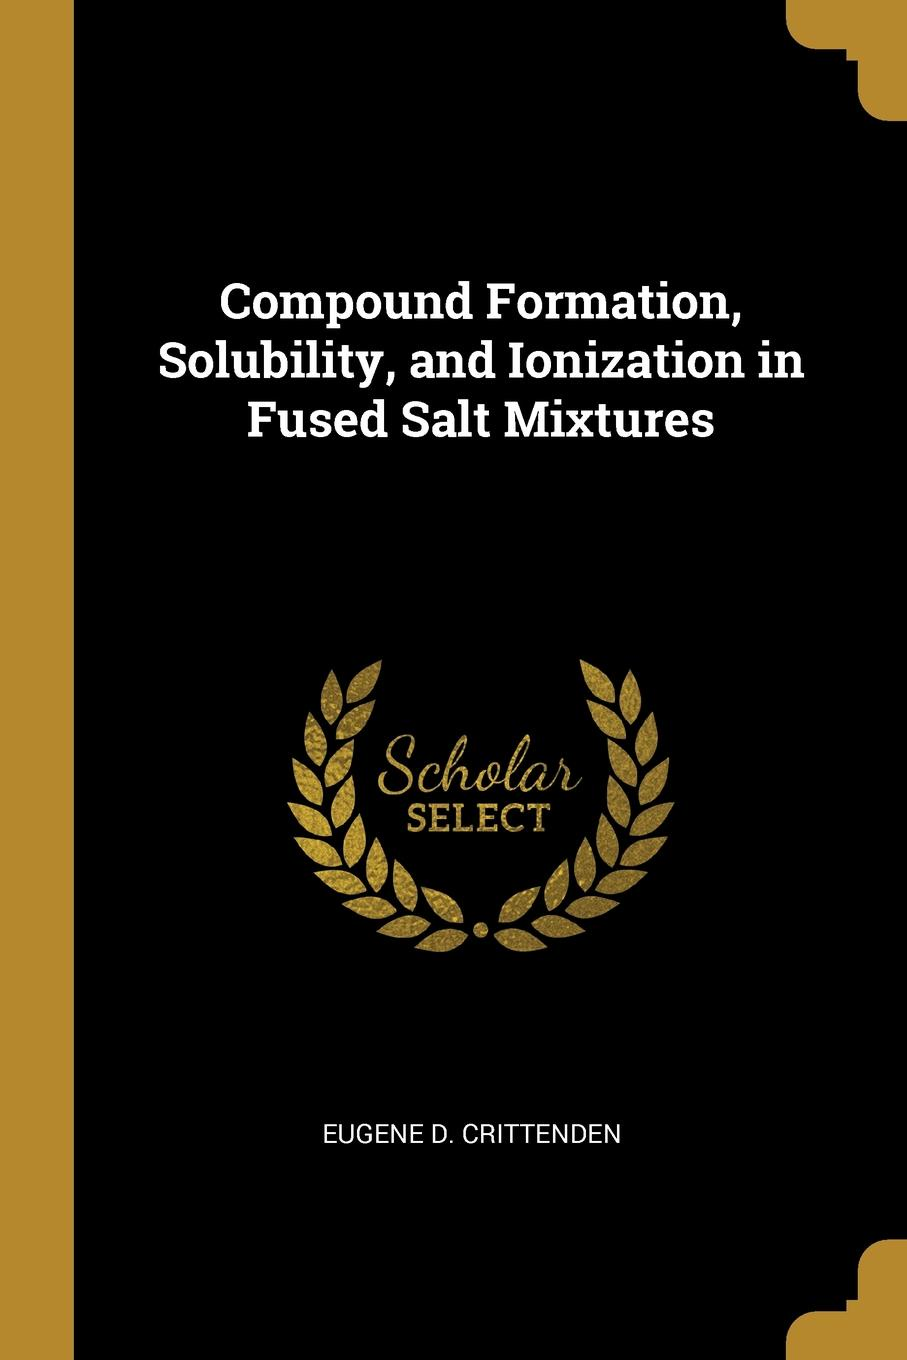 Compound Formation, Solubility, and Ionization in Fused Salt Mixtures